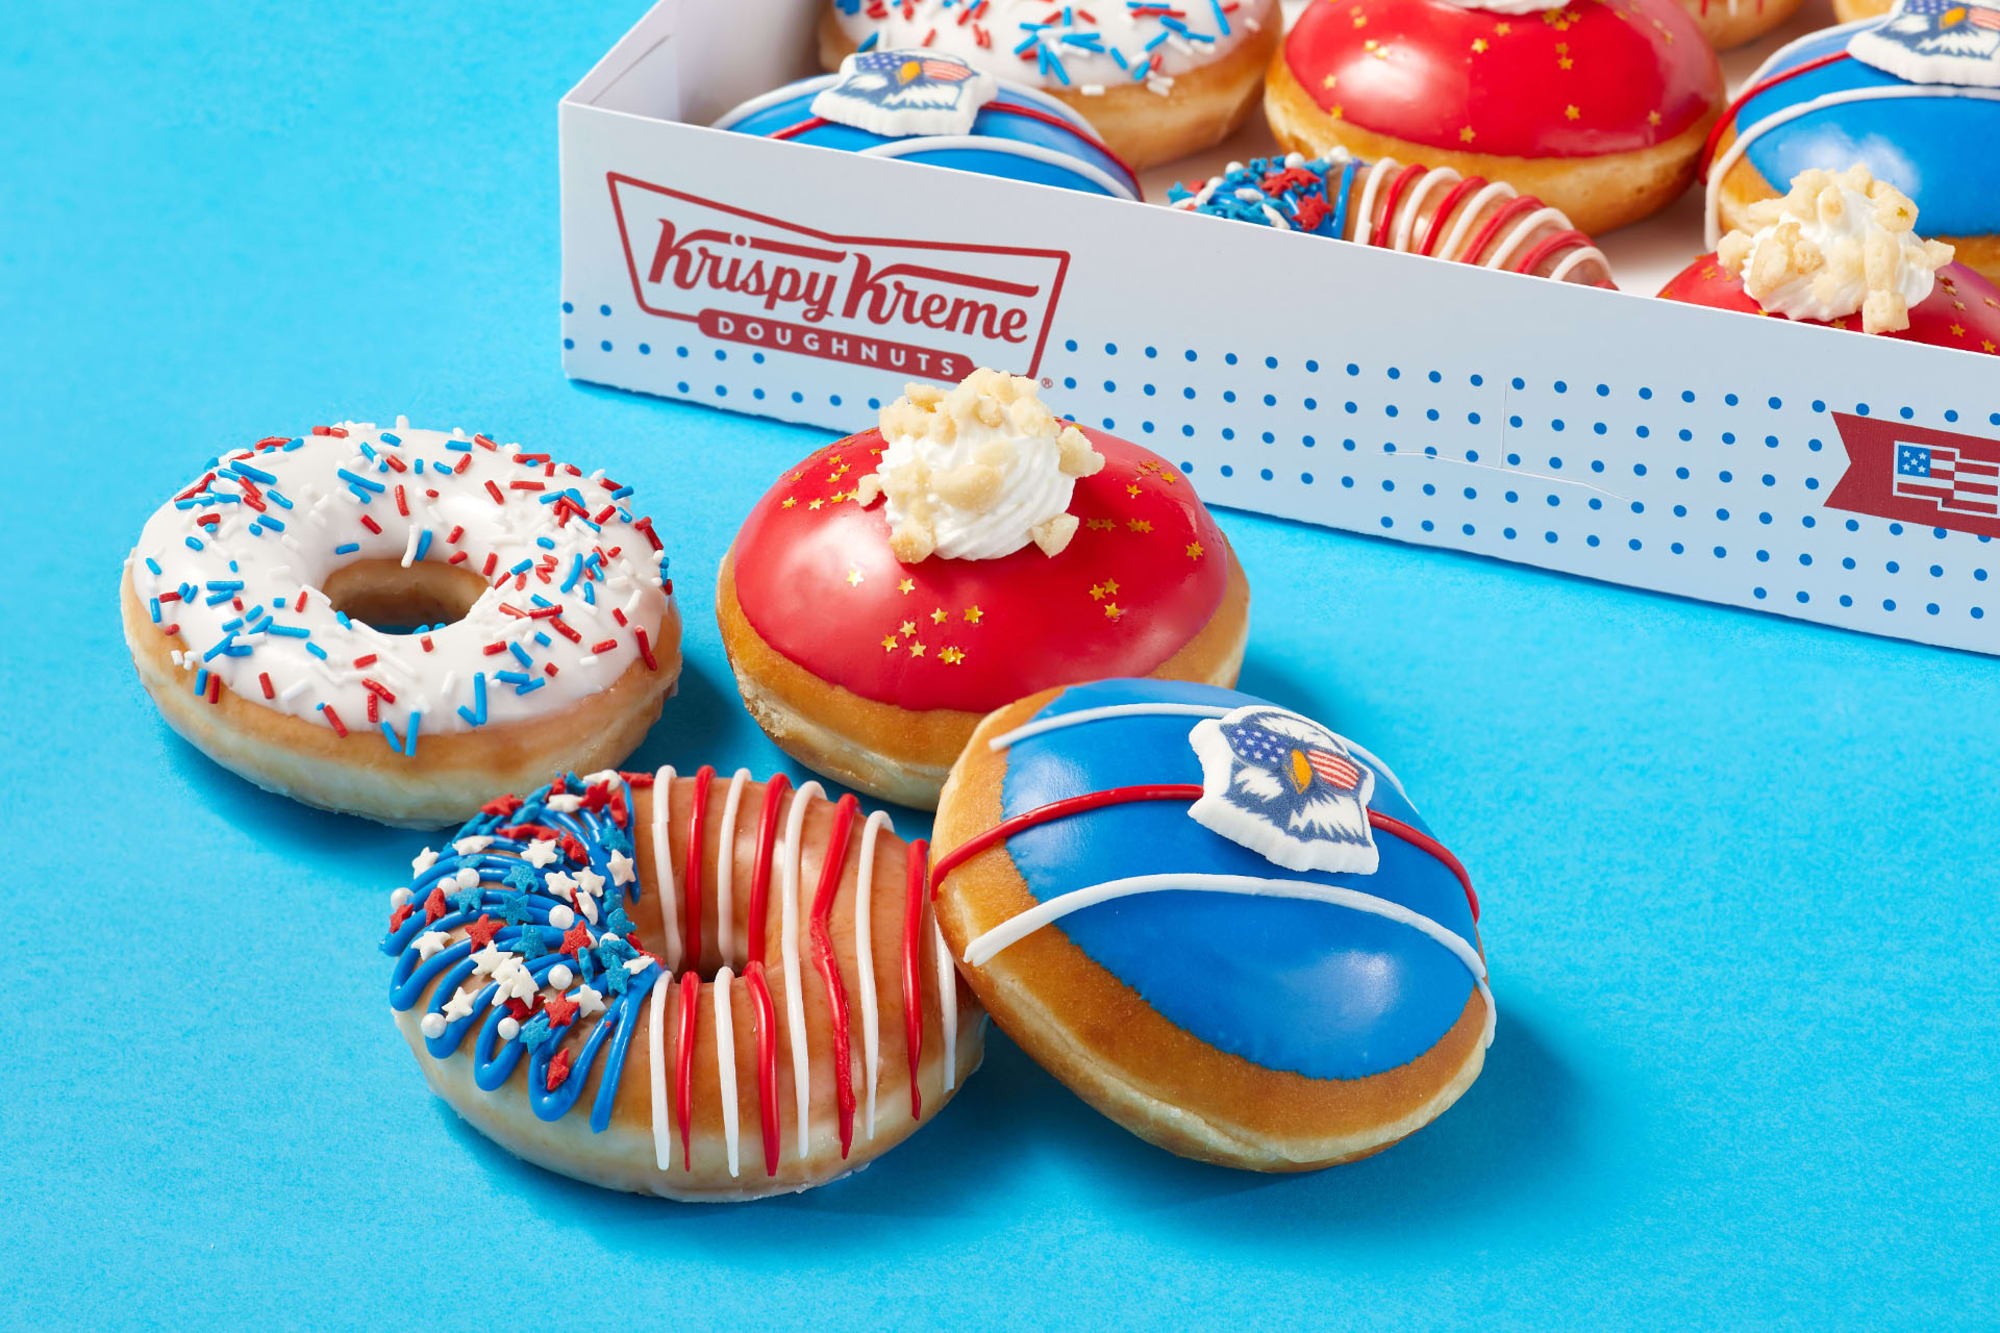 Go Fourth and celebrate with Krispy Kreme Fourth of July collection